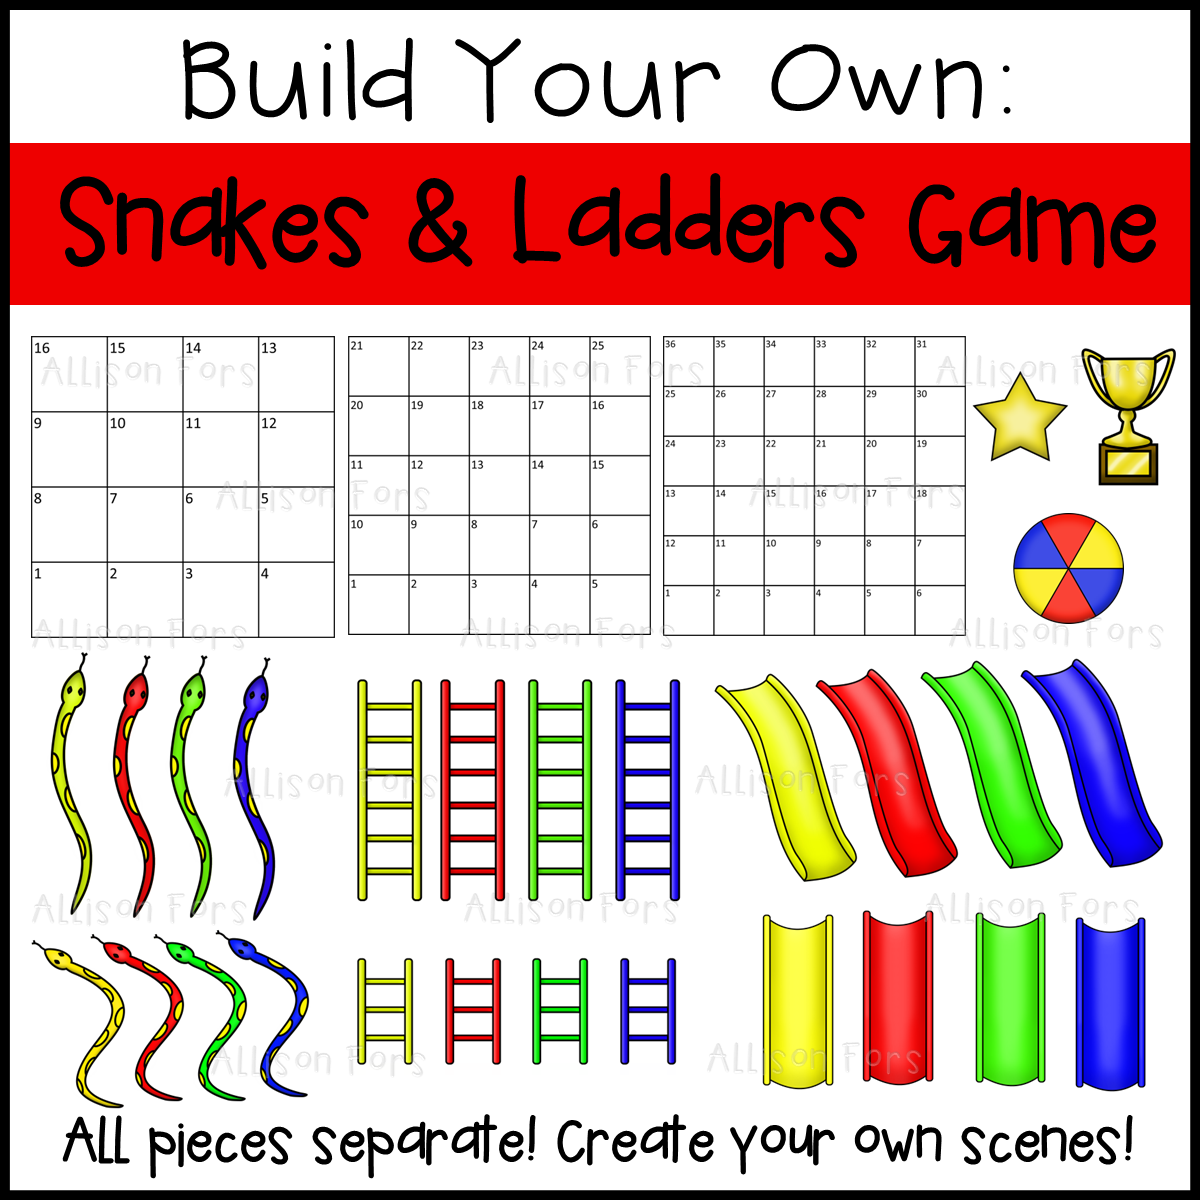 Snakes And Ladders Game Template Dnrenew